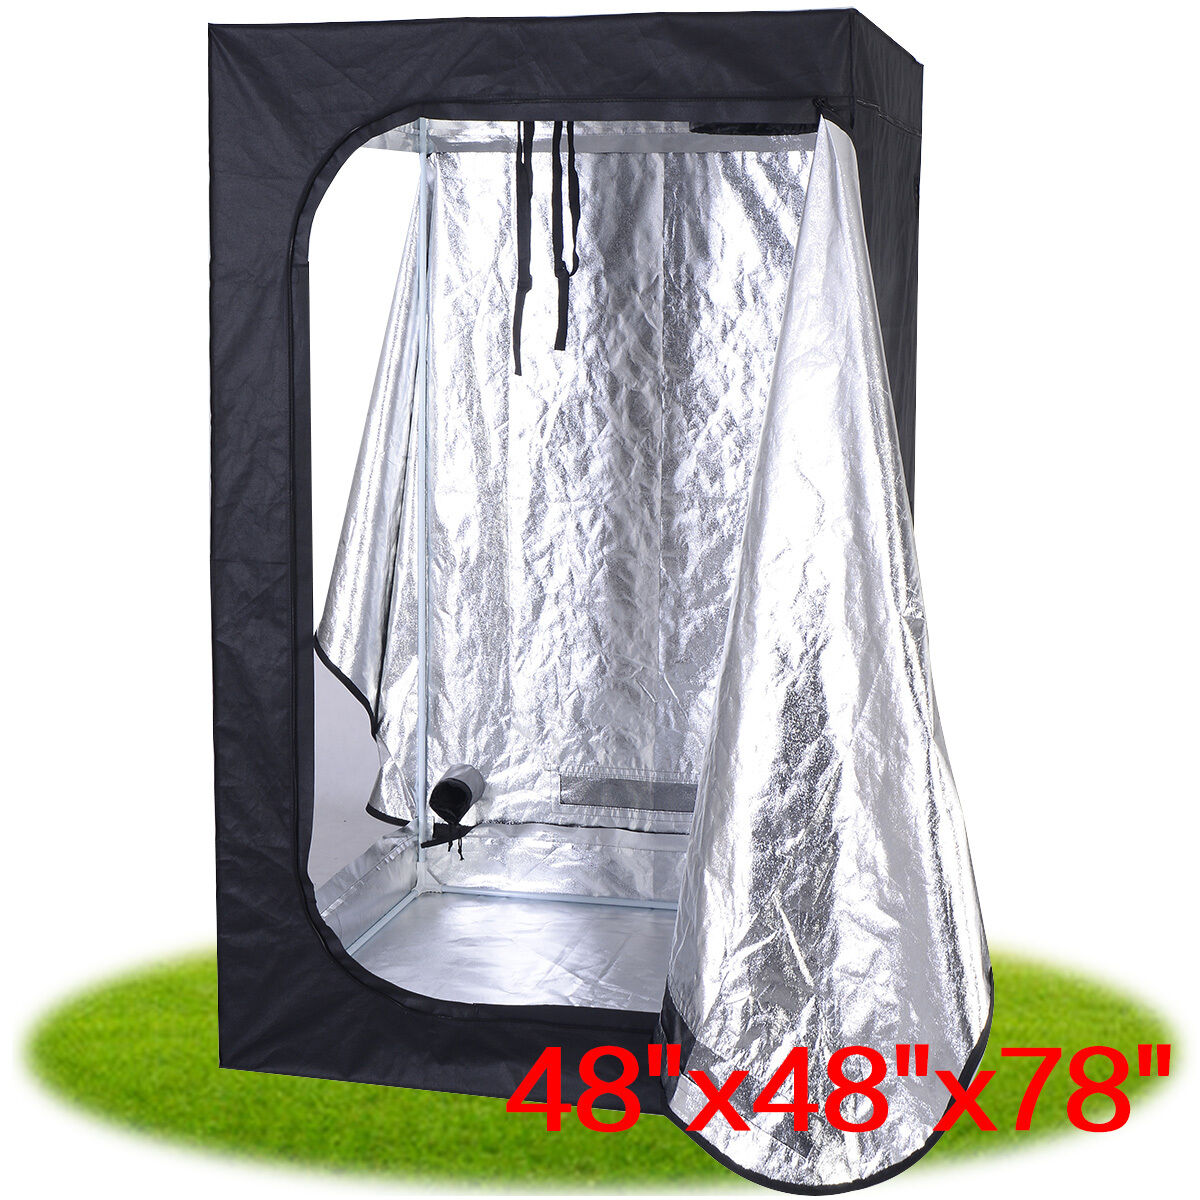 Picture 1 of 9 ...  sc 1 st  eBay & Giantex Indoor Grow Tent Room Reflective MYLAR Hydroponic Non ...